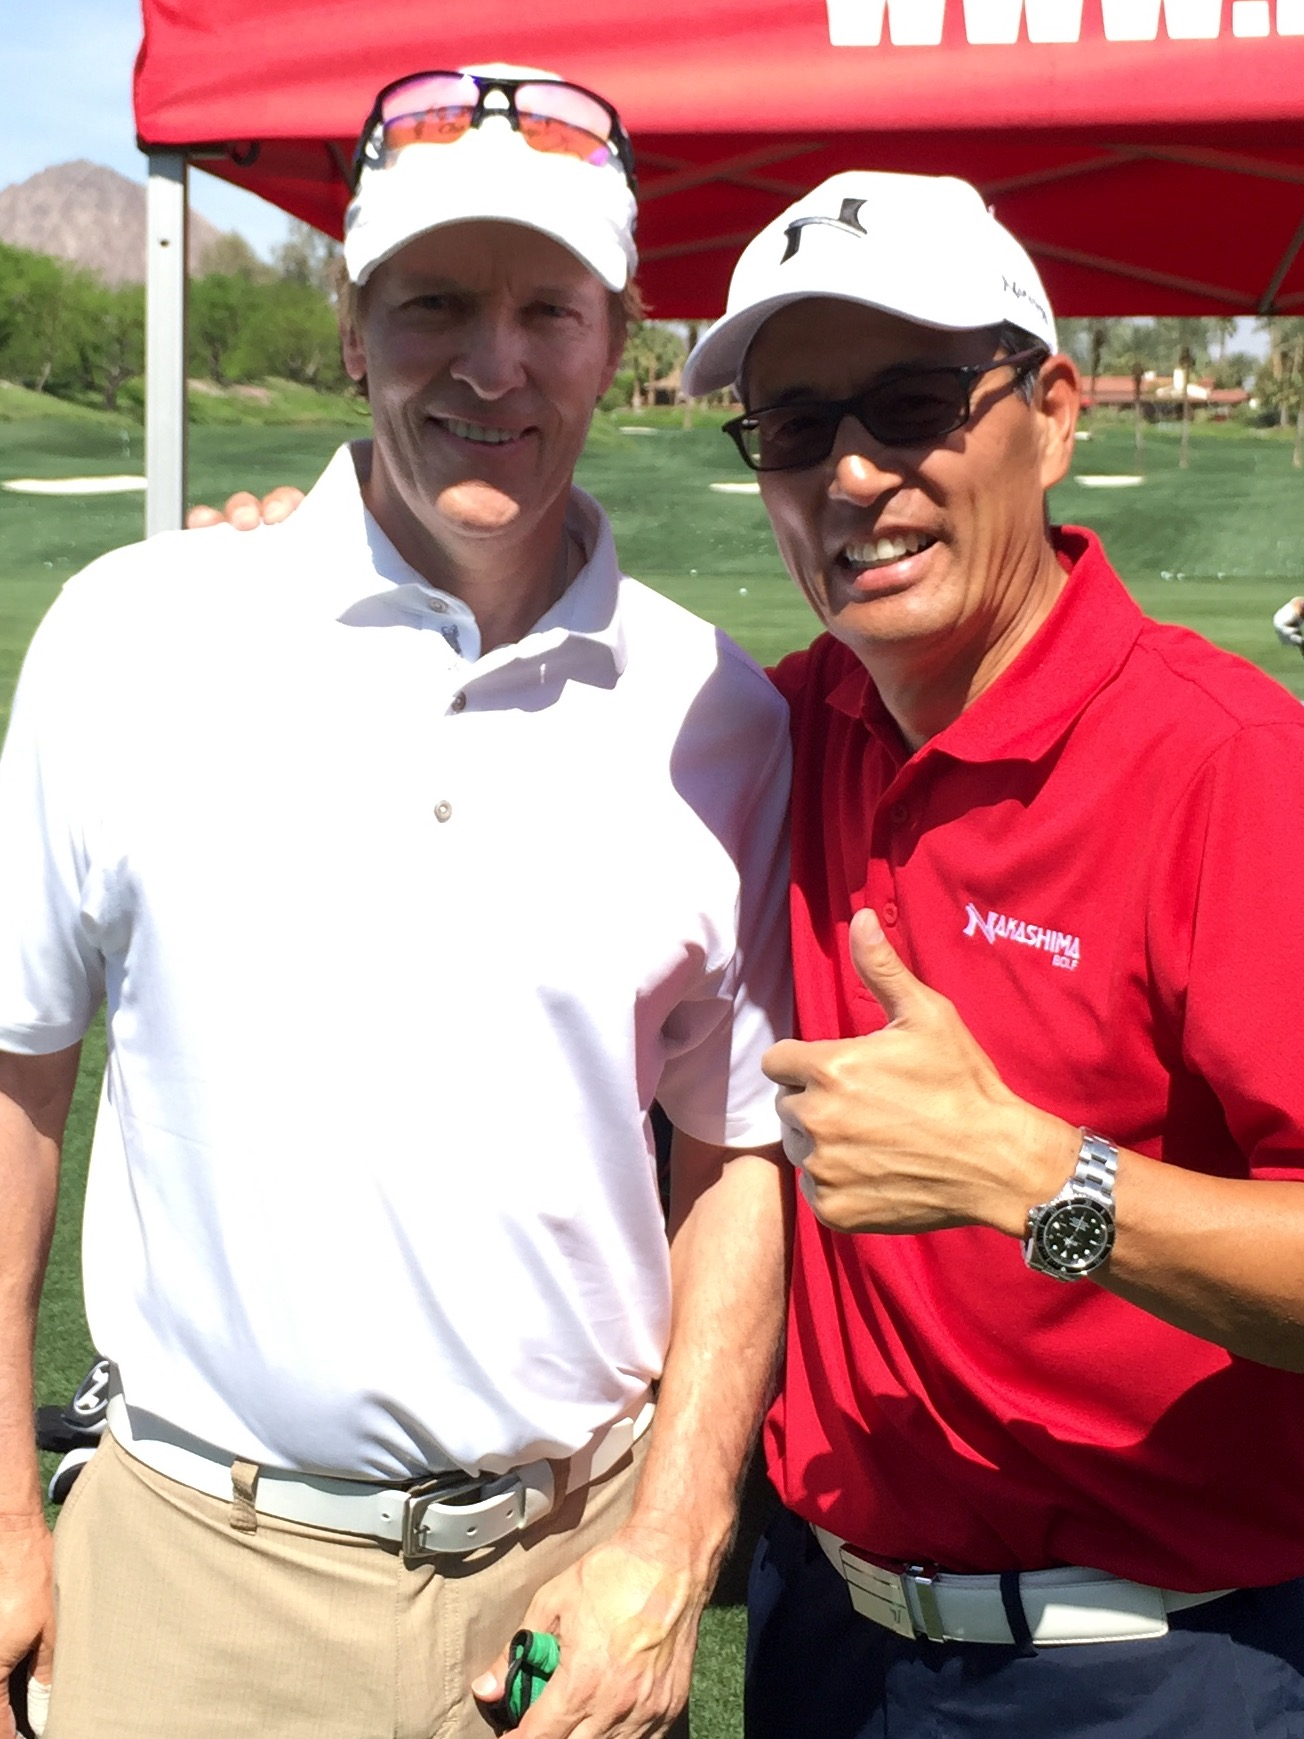 Jack Wagner (Actor/Singer;General Hospital, Santa Barbara, The Bold and the Beautiful and Melrose Place. 2x champion of the American Century Golf Championship!)